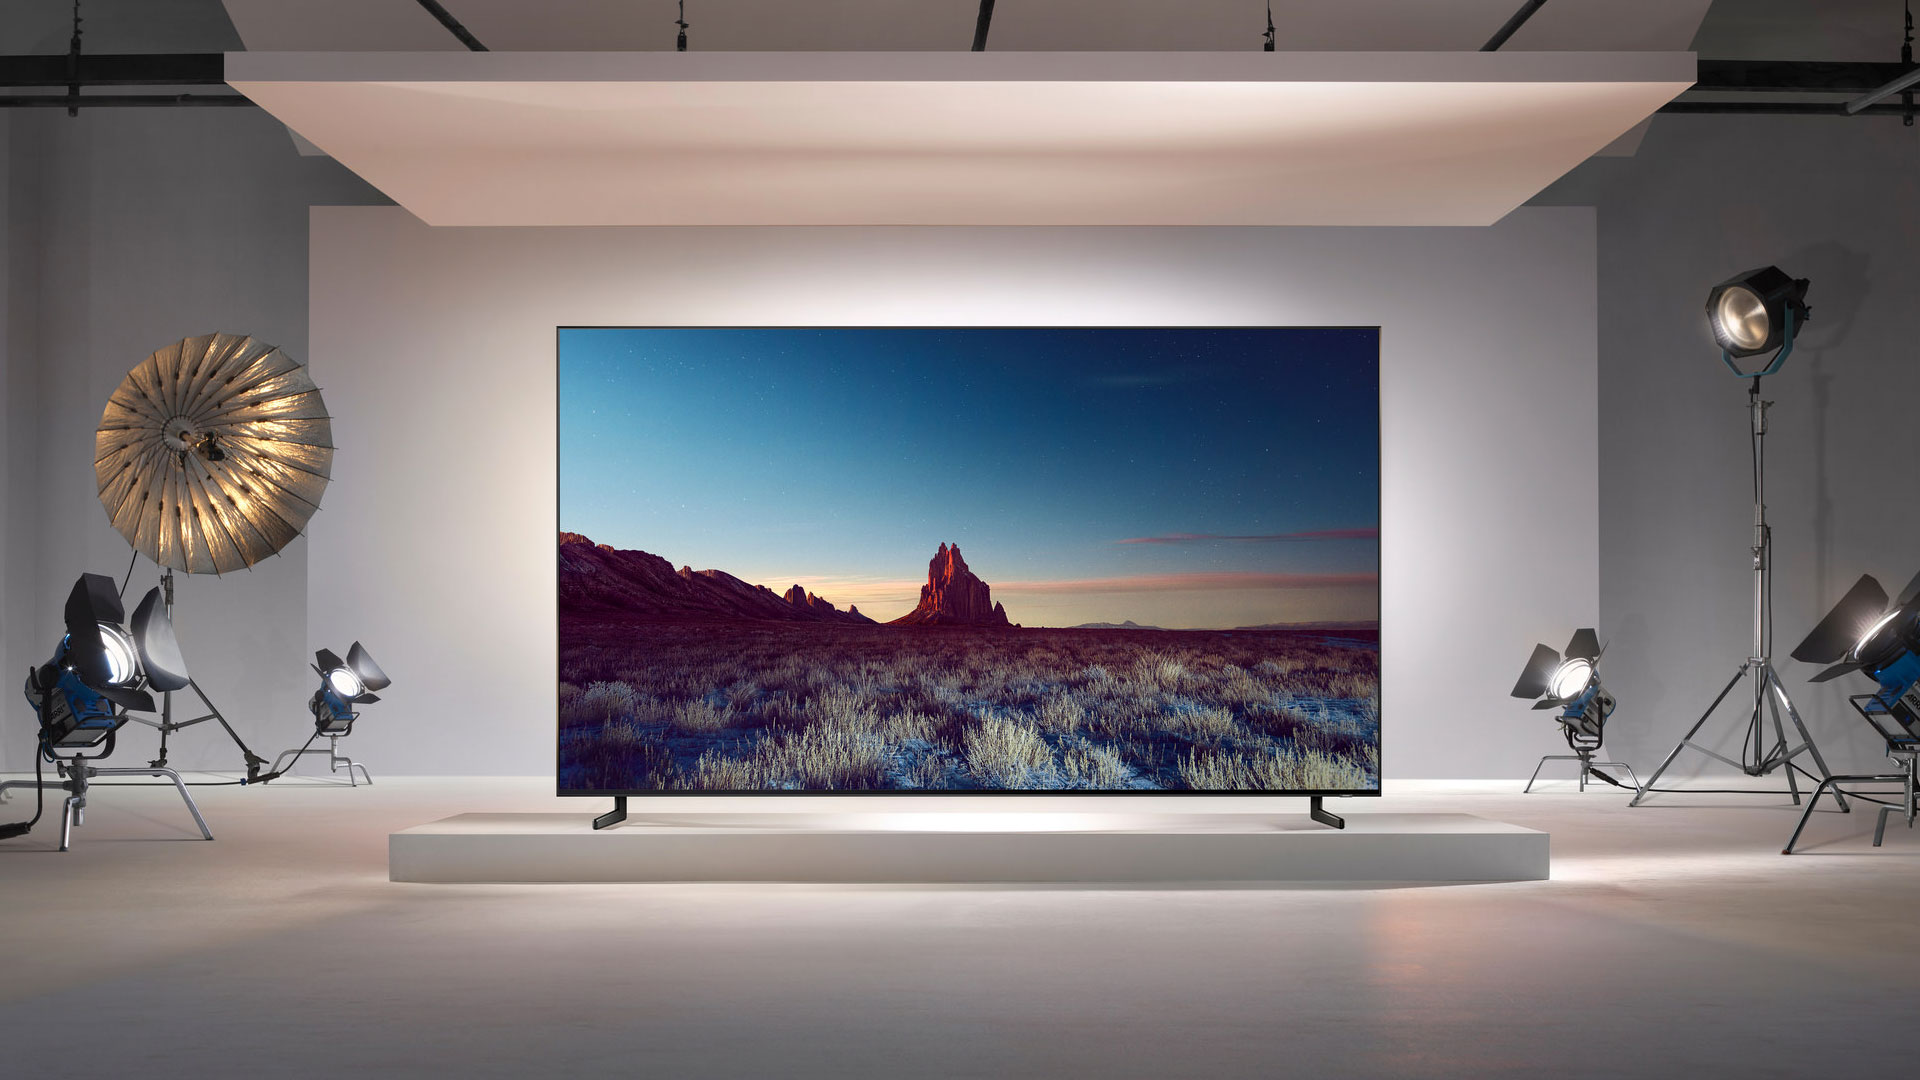 bhBjT2V4jdPfepdvP7VFQk - Sony vs Samsung TV: choosing the TV brand for you